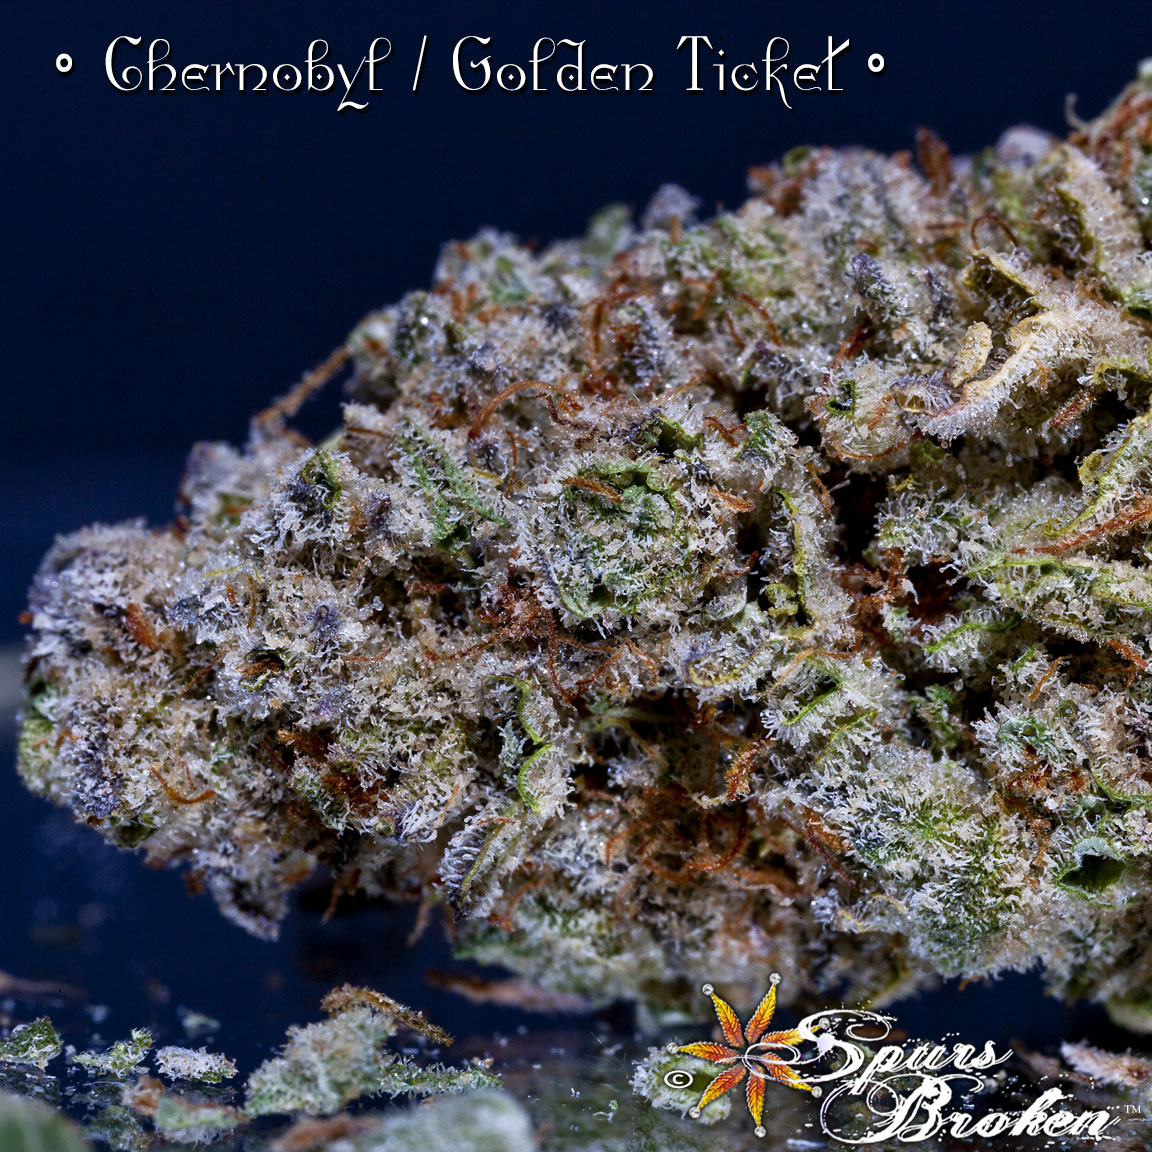 Chernobyl / Golden Ticket - Cannabis Macro Photography by Spurs Broken (Robert R. Sanders)